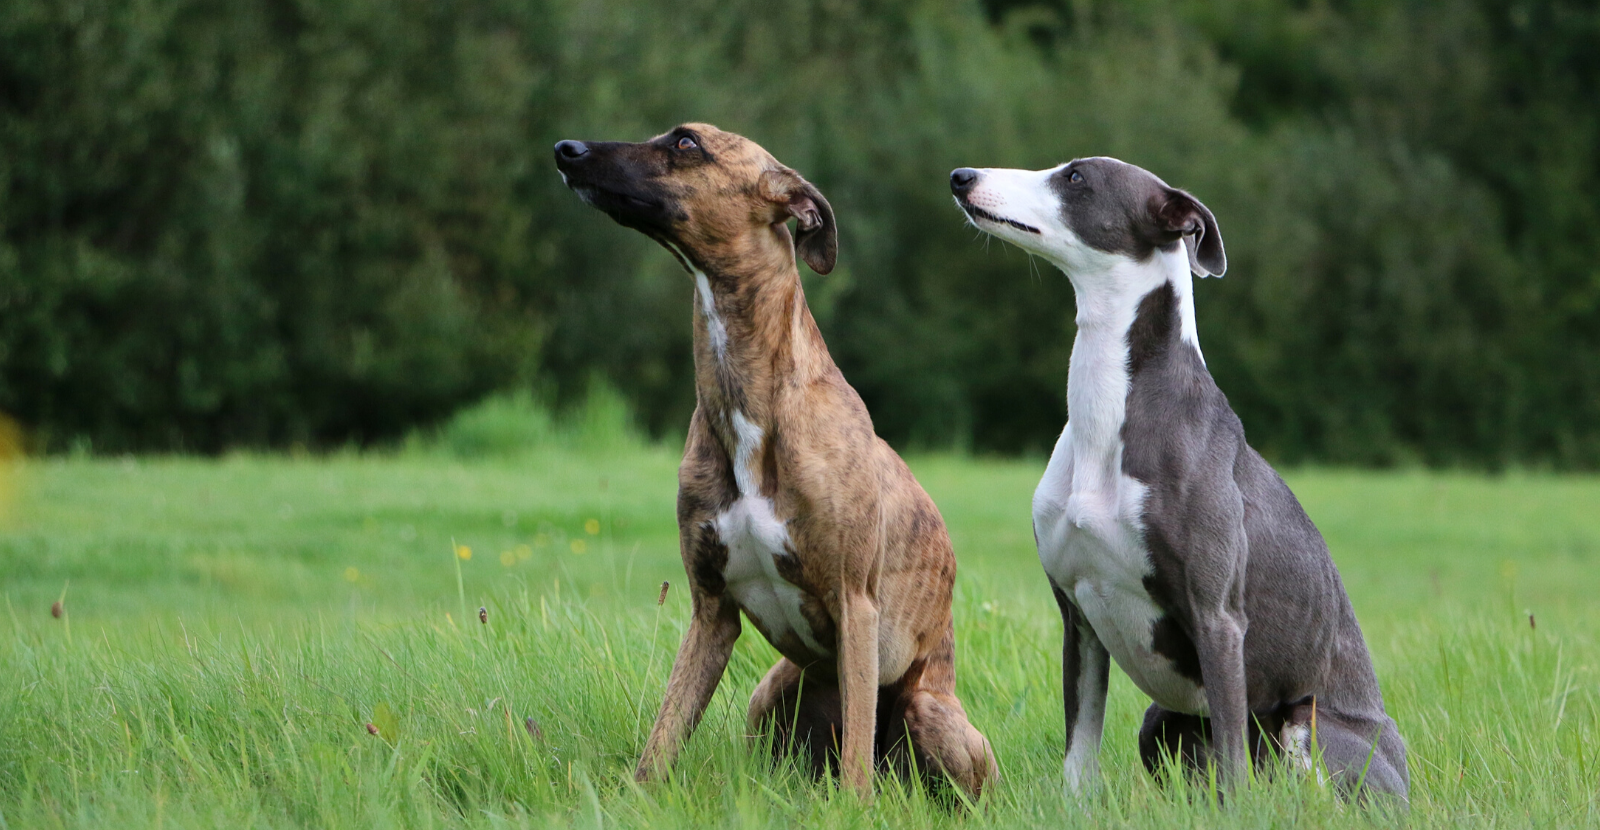 2 dogs greyhounds